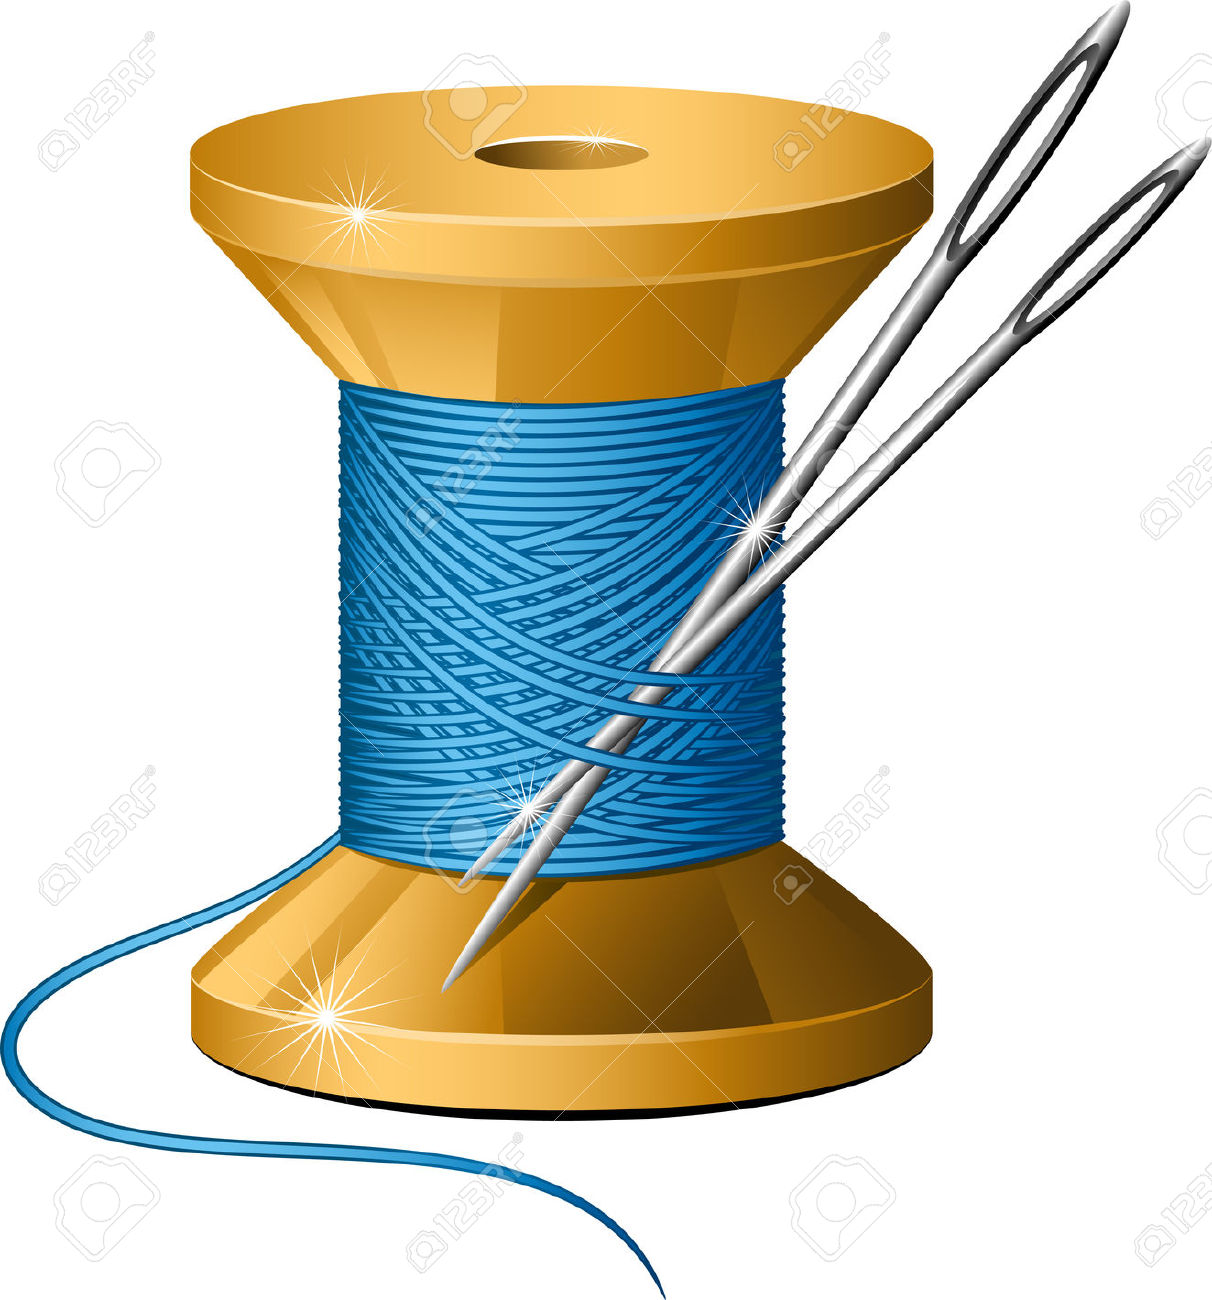 Needle and thread vector clipart.